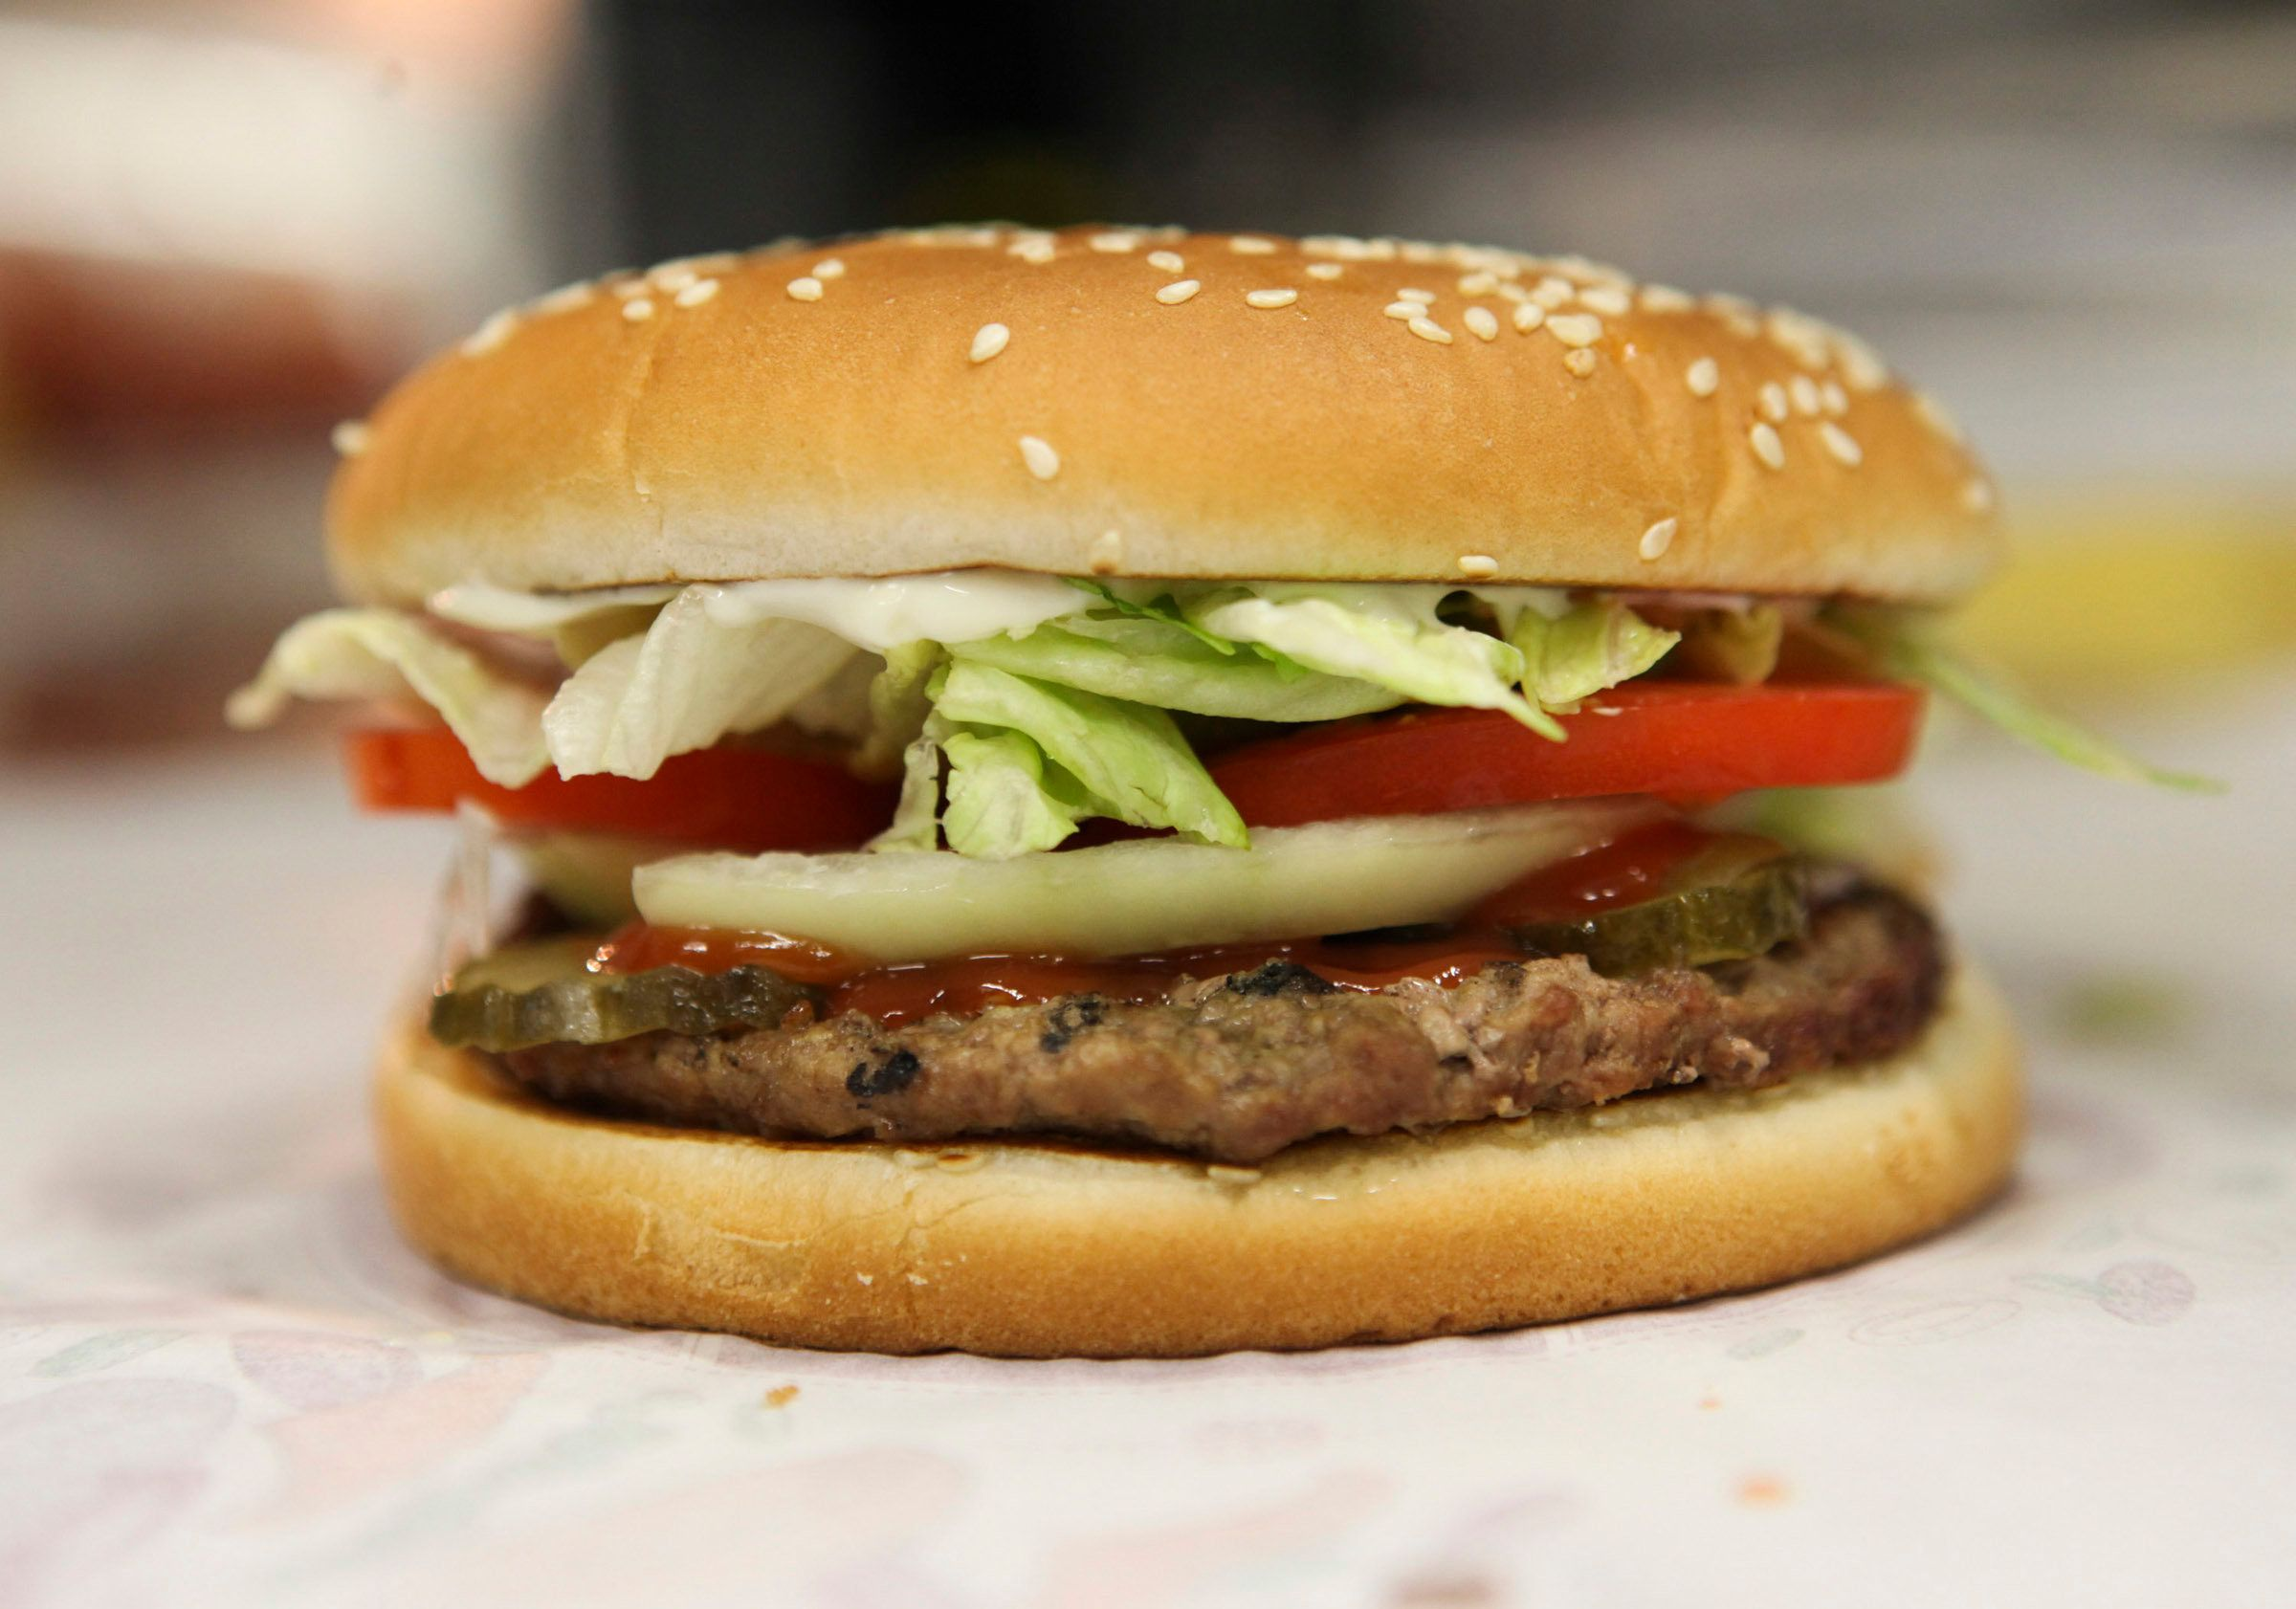 A whopper burger sits in the kitchen at a Burger King restaurant in Basildon, U.K., on Wednesday, Sept. 8, 2010. Burger King Holdings Inc. agreed to be acquired by 3G Capital, a New York investment firm backed by Brazilian investors, for $3.3 billion in the biggest restaurant acquisition in at least a decade. Photographer: Chris Ratcliffe/Bloomberg via Getty Images